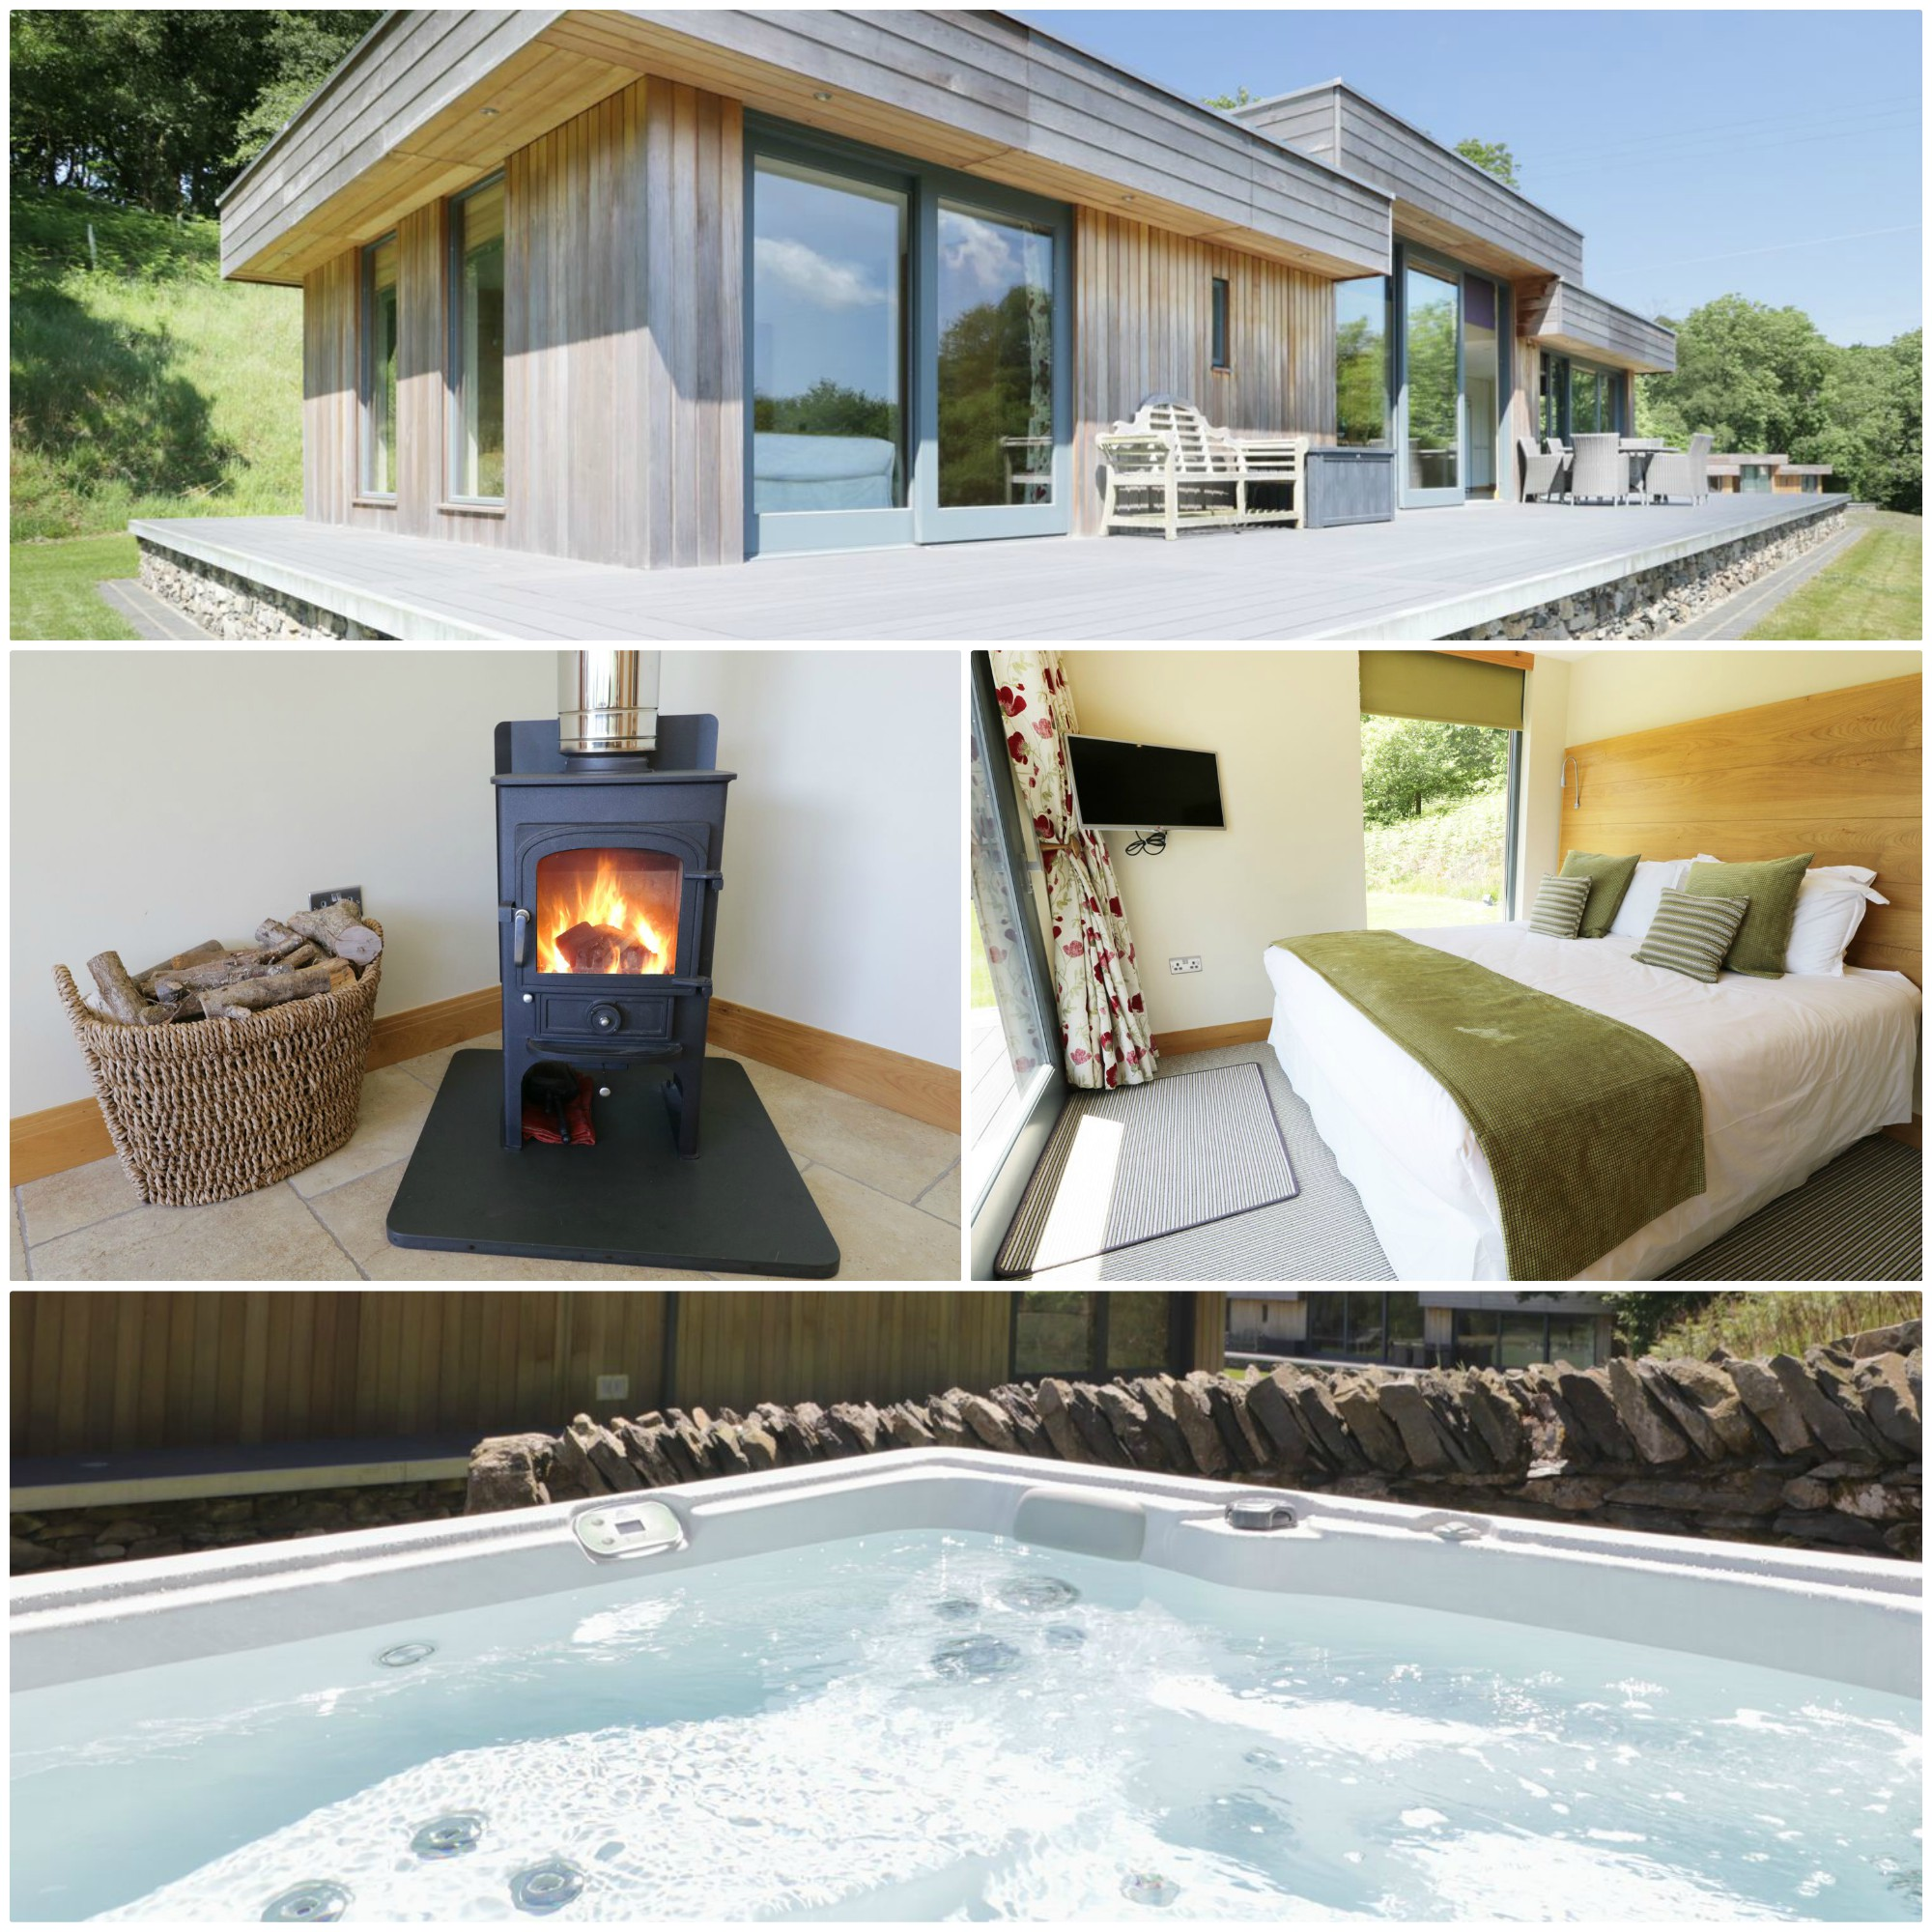 5* luxury for 6 in the Lake District with a hot tub and wood-burning stove